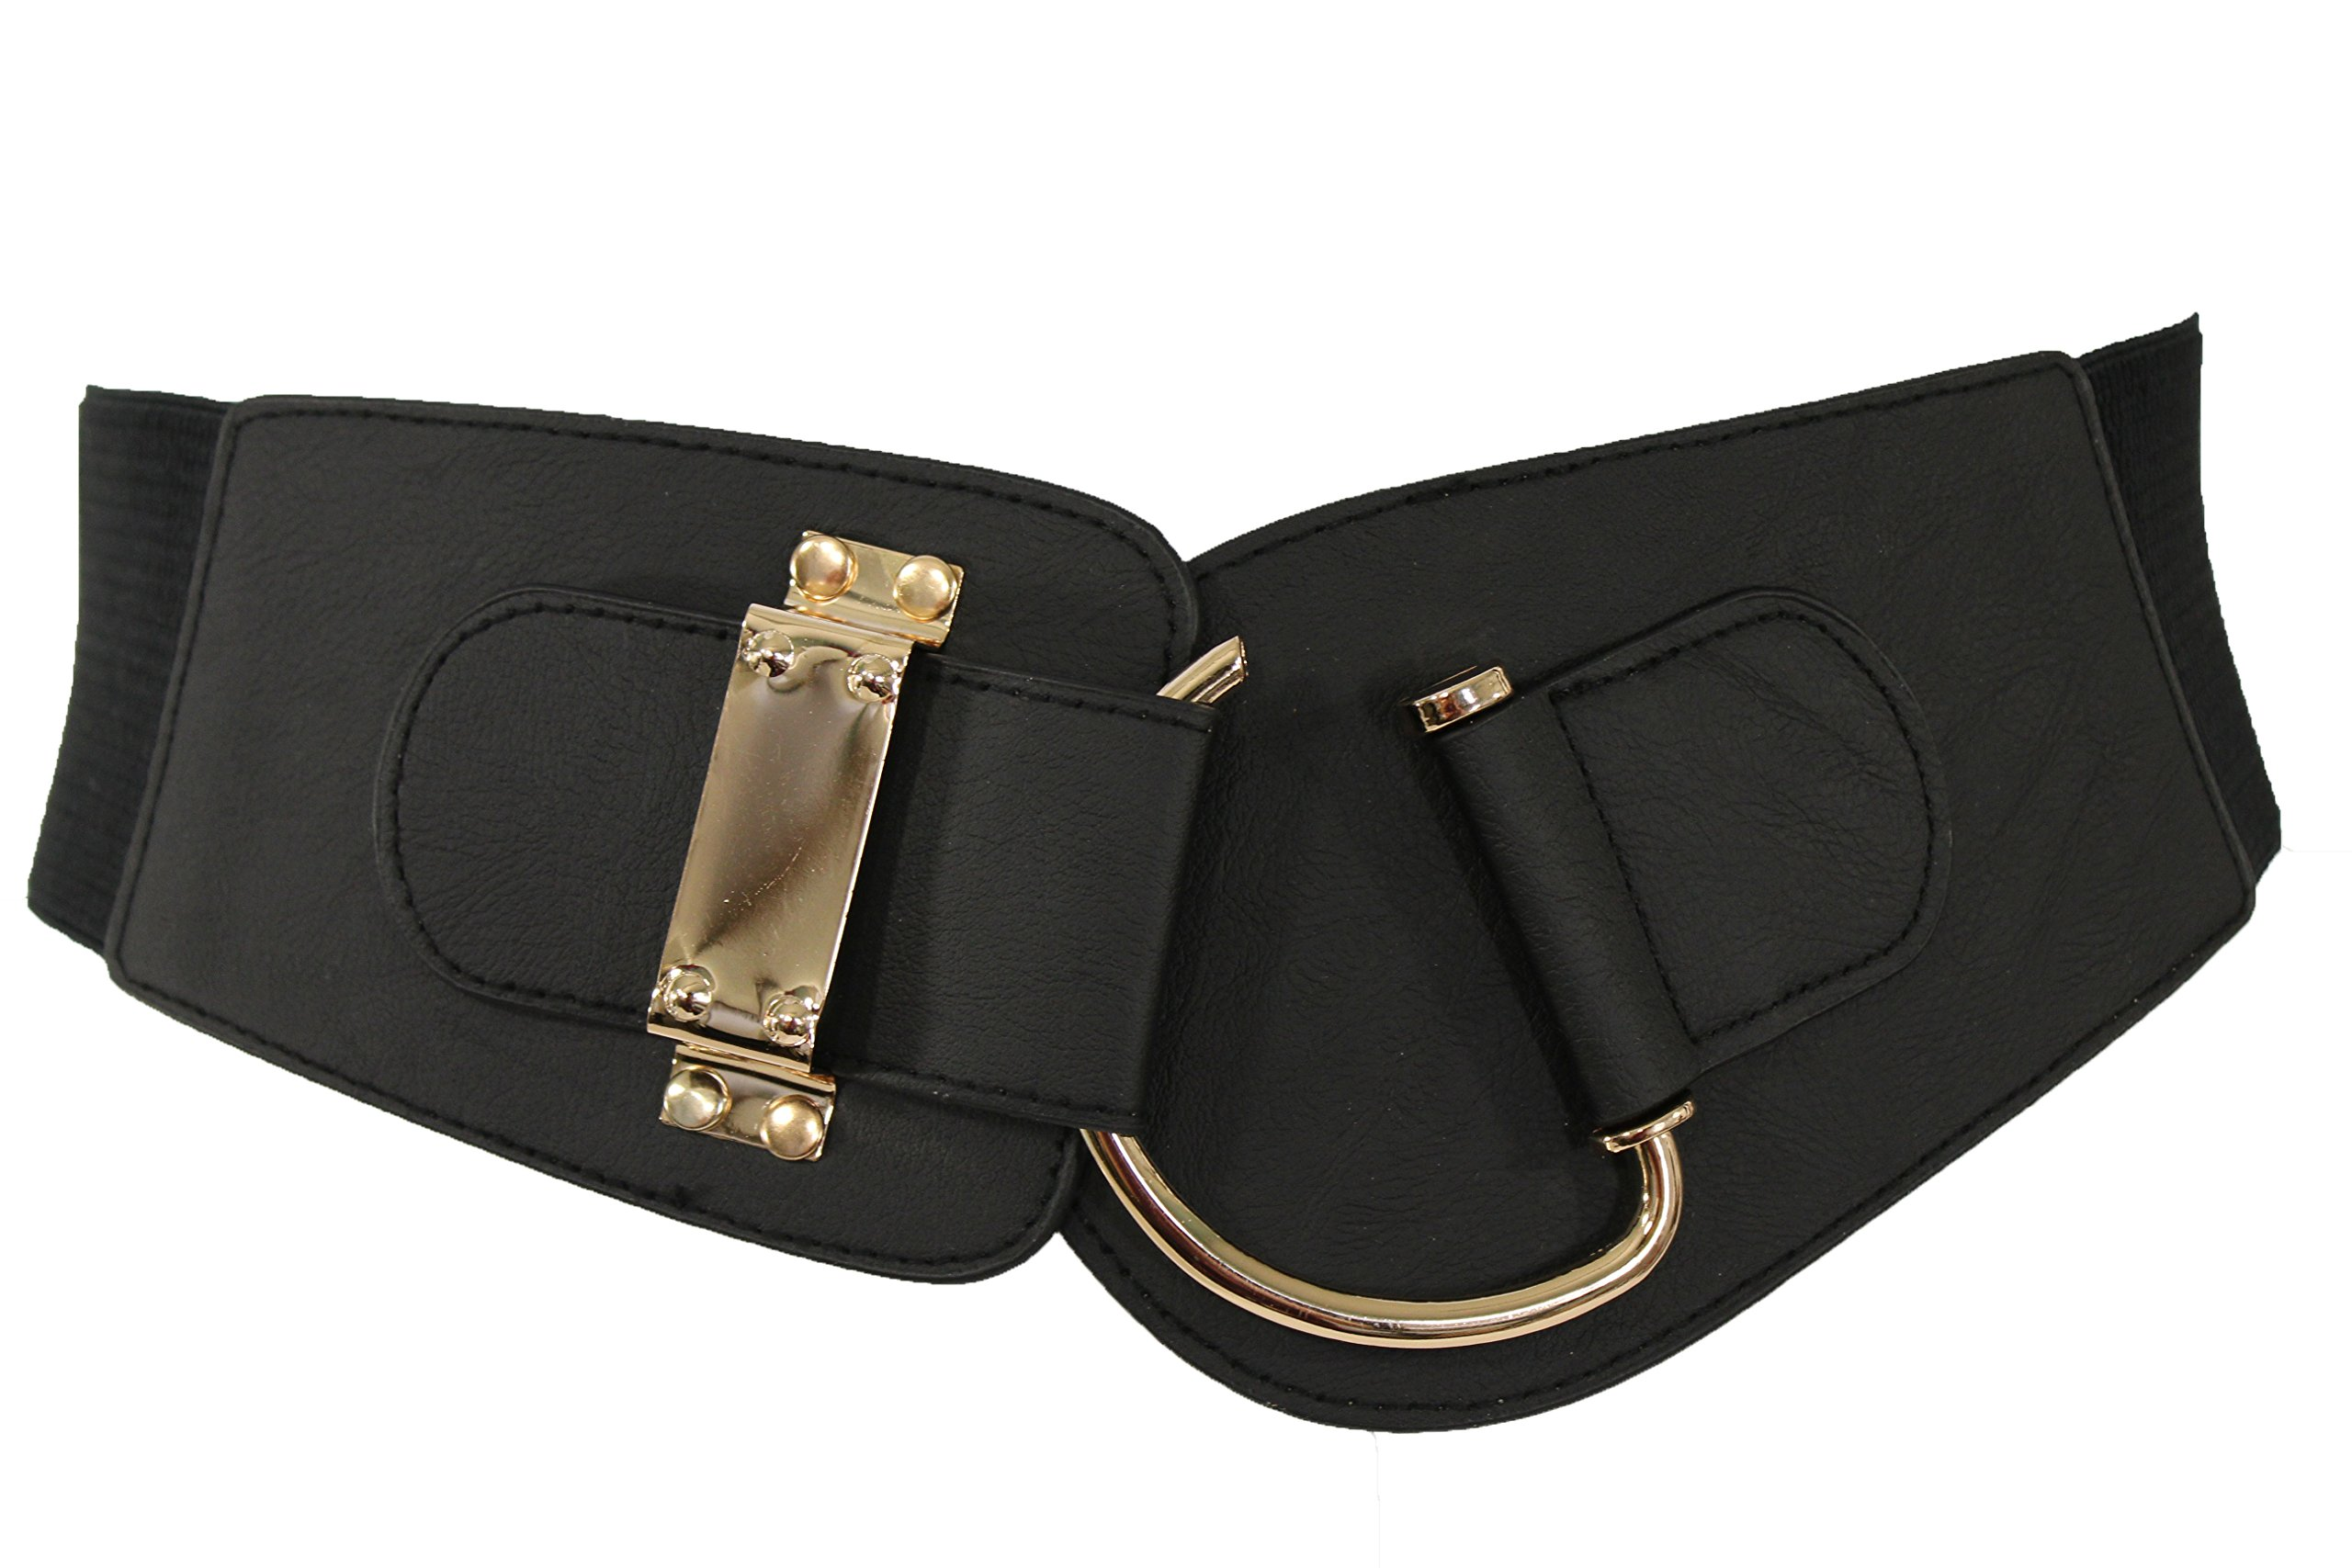 TFJ Women's Wide Fashion Belt Hip High Waist Gold Metal Hook Buckle M L Xl Black (Black)